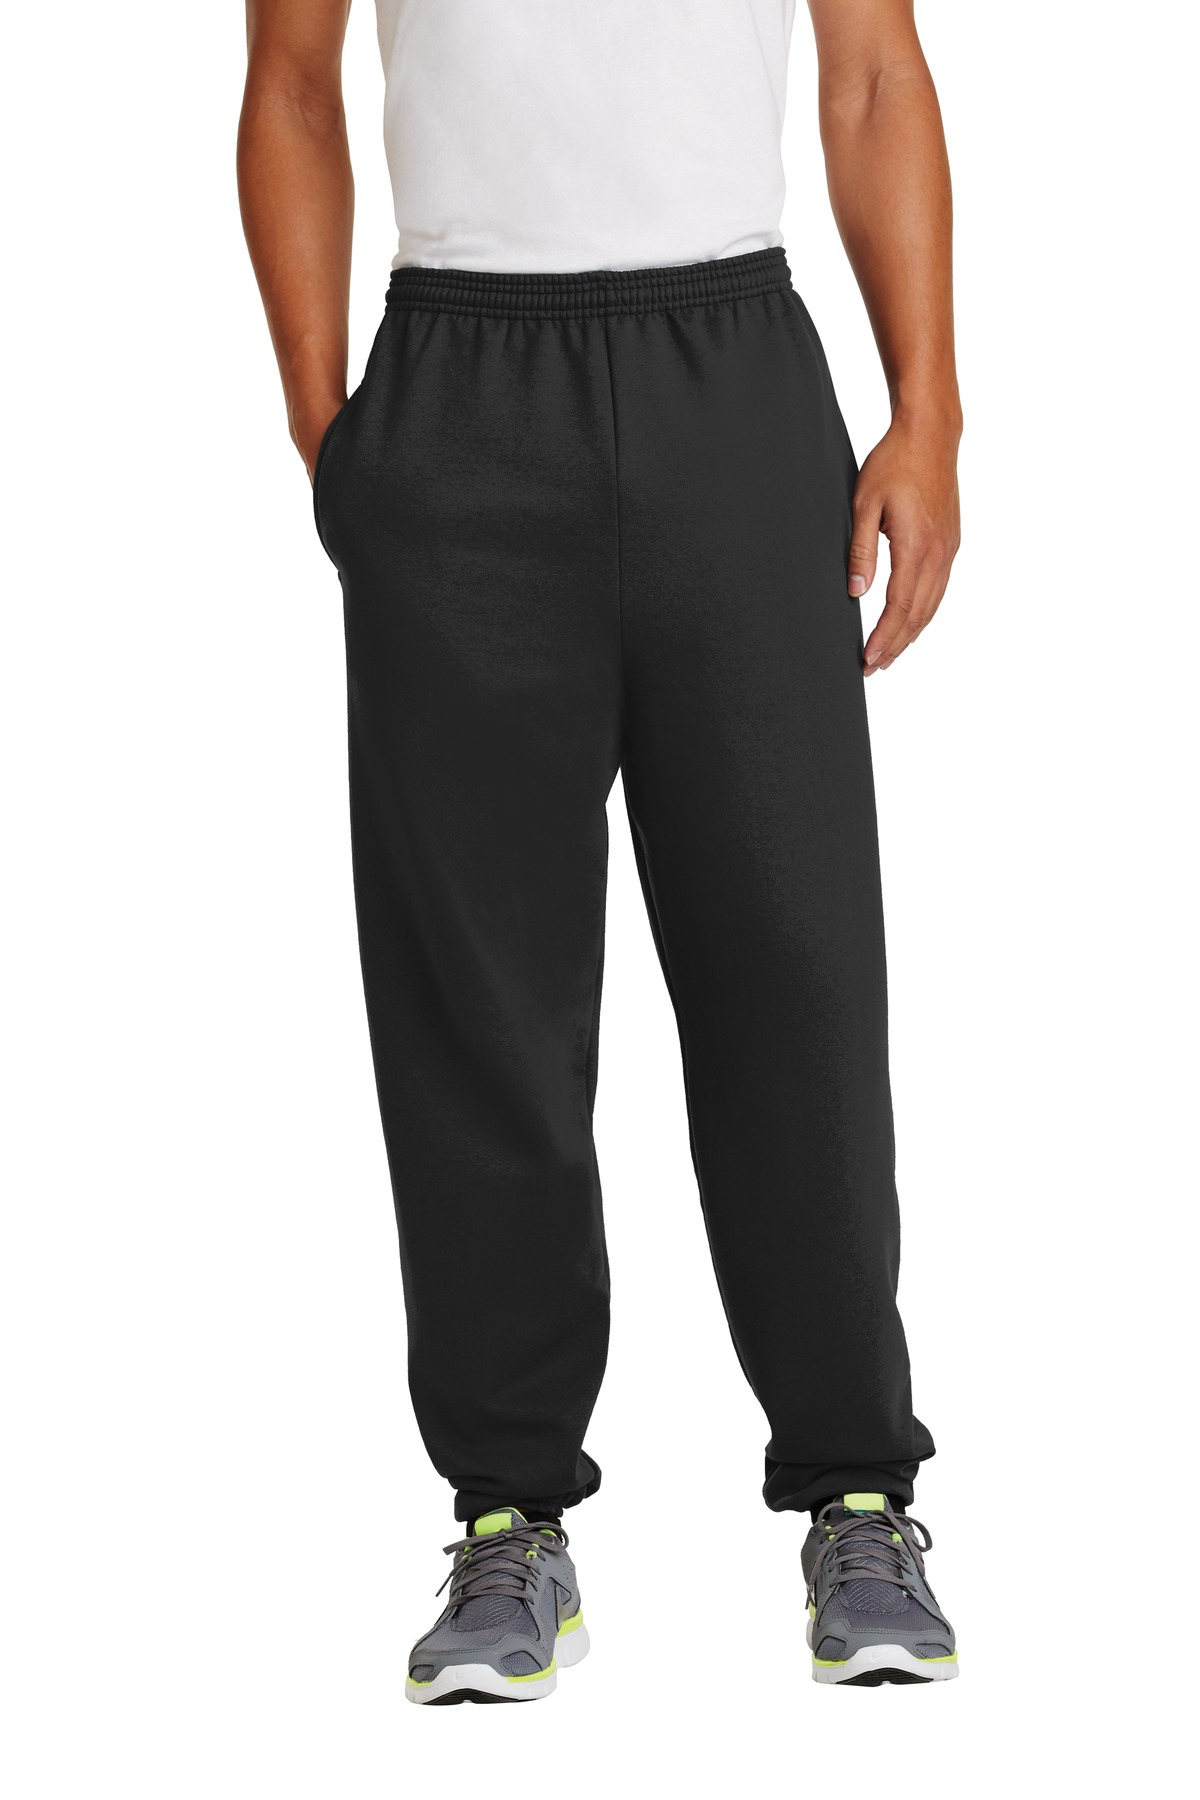 Port & Company ®  - Essential Fleece Sweatpant with Pockets.  PC90P - Jet Black